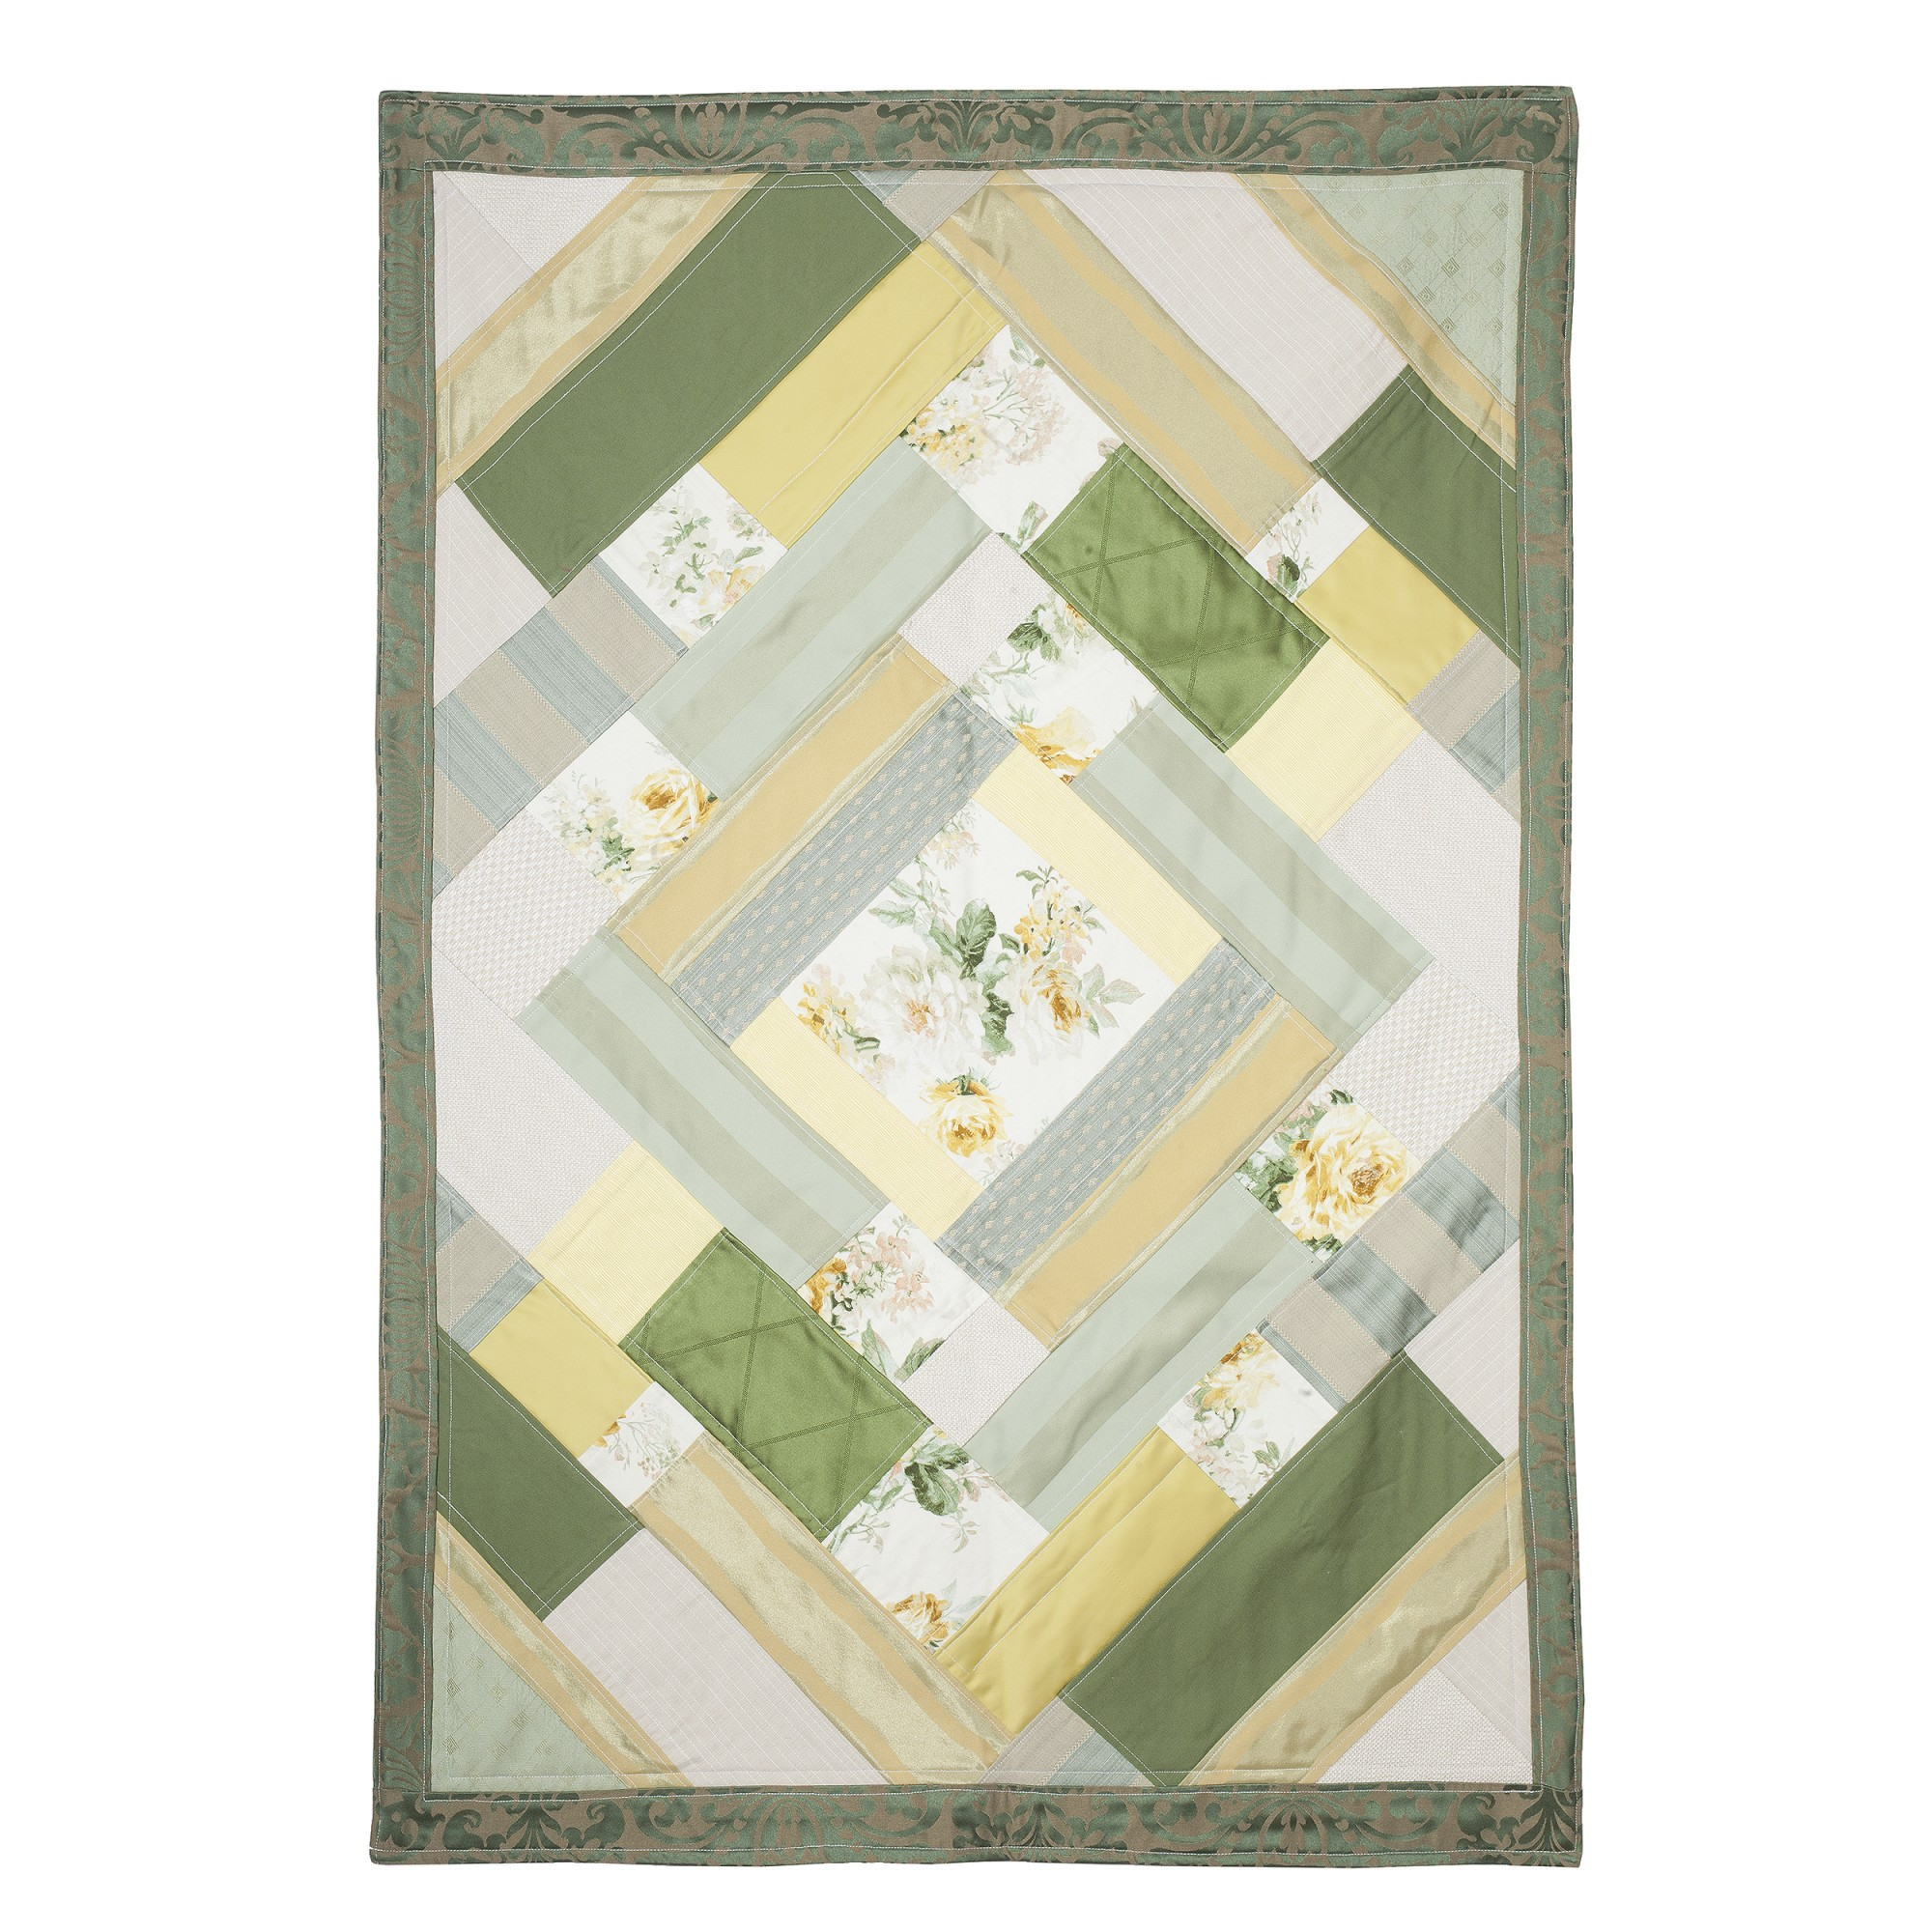 Tappeti Mucca Patchwork Tappeto Patchwork Perfect Tappeto Patchwork With Tappeto